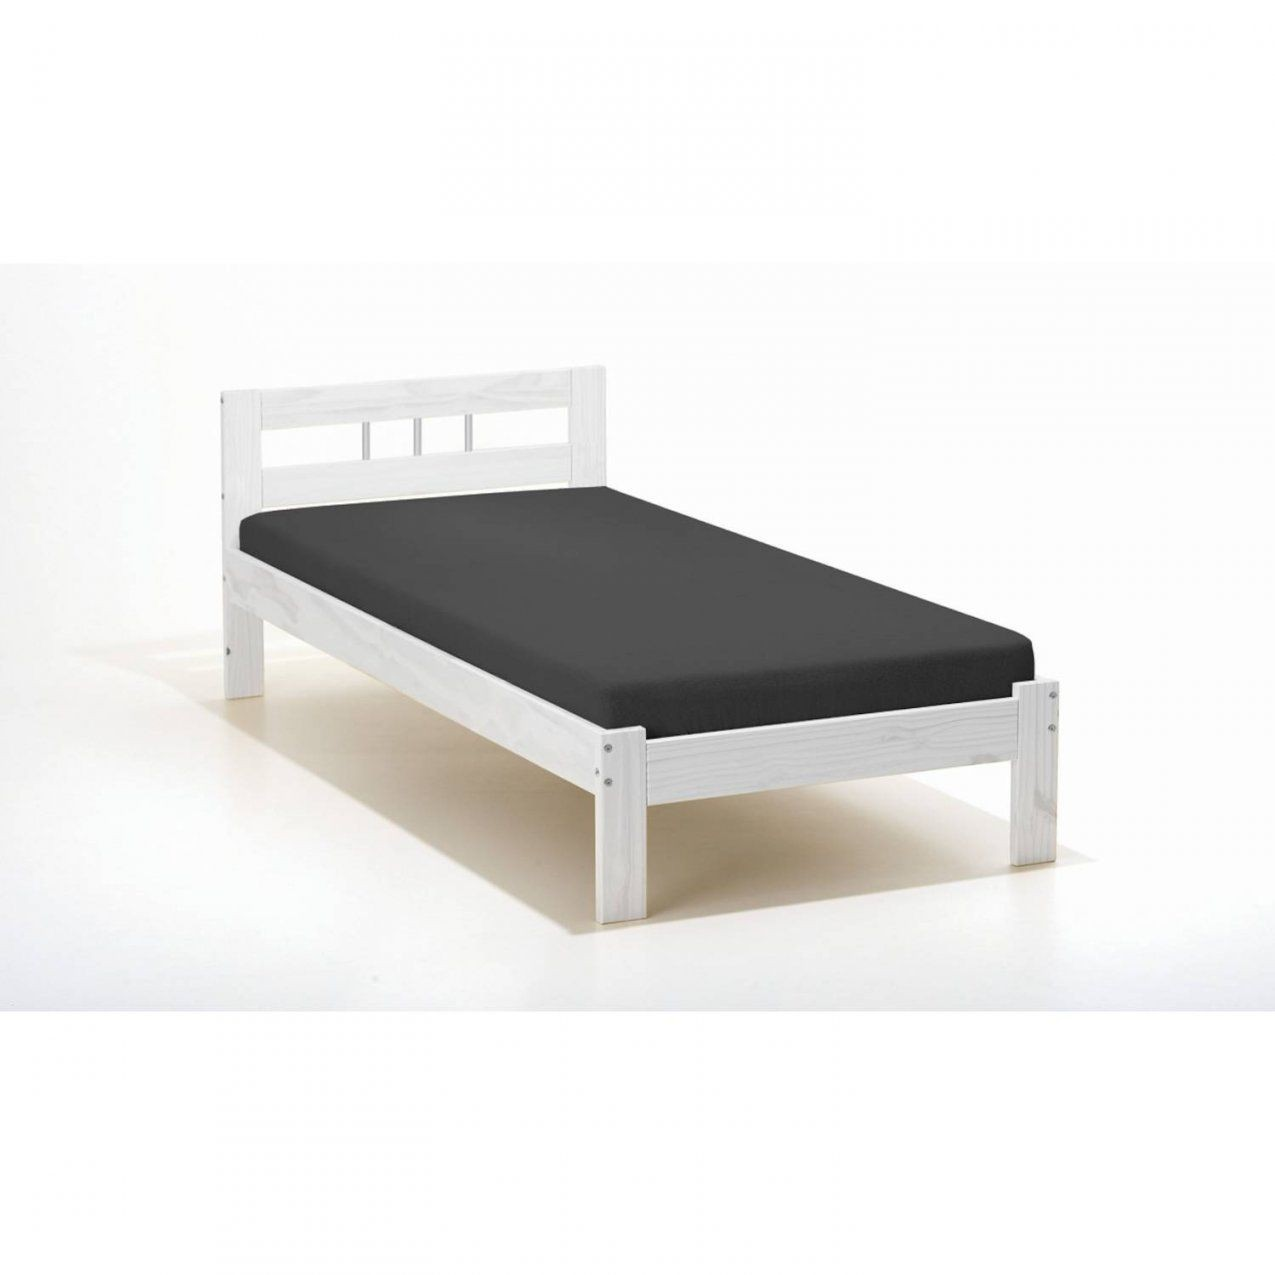 gnstige betten 90x200 top metallbett weiss x ikea bett weiss x free large size of bett holz. Black Bedroom Furniture Sets. Home Design Ideas